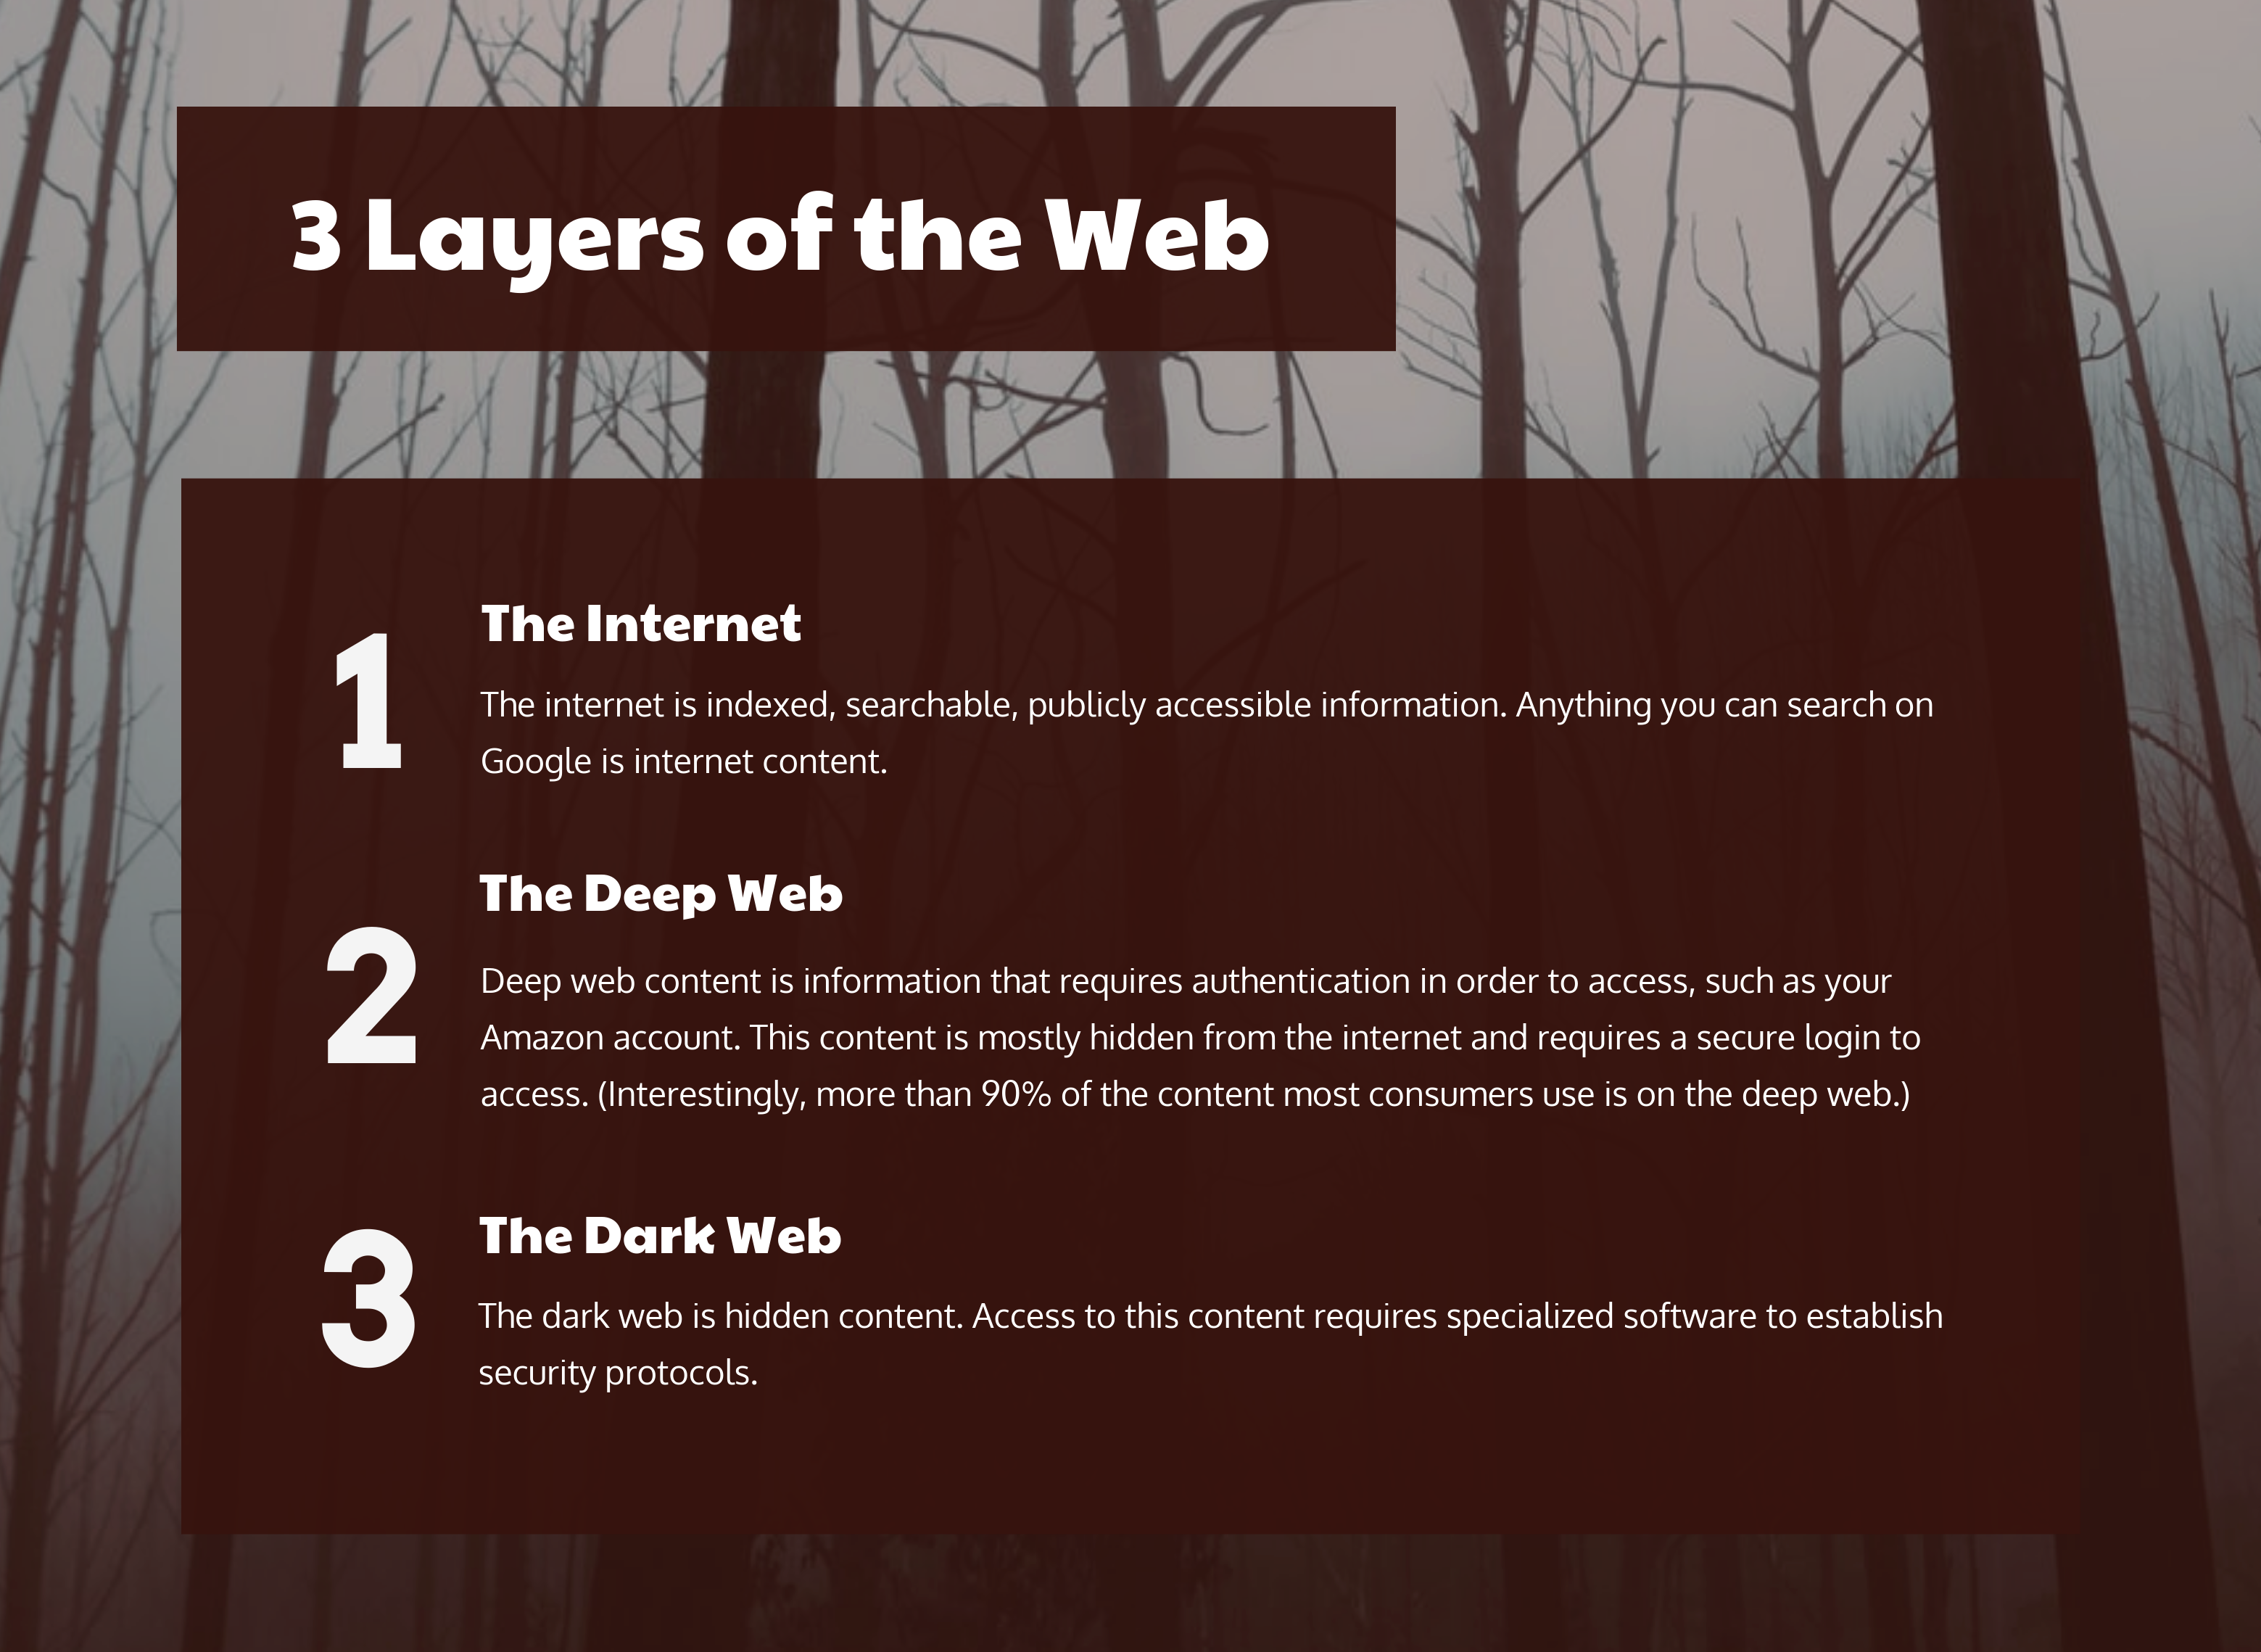 3 Layers of the Web